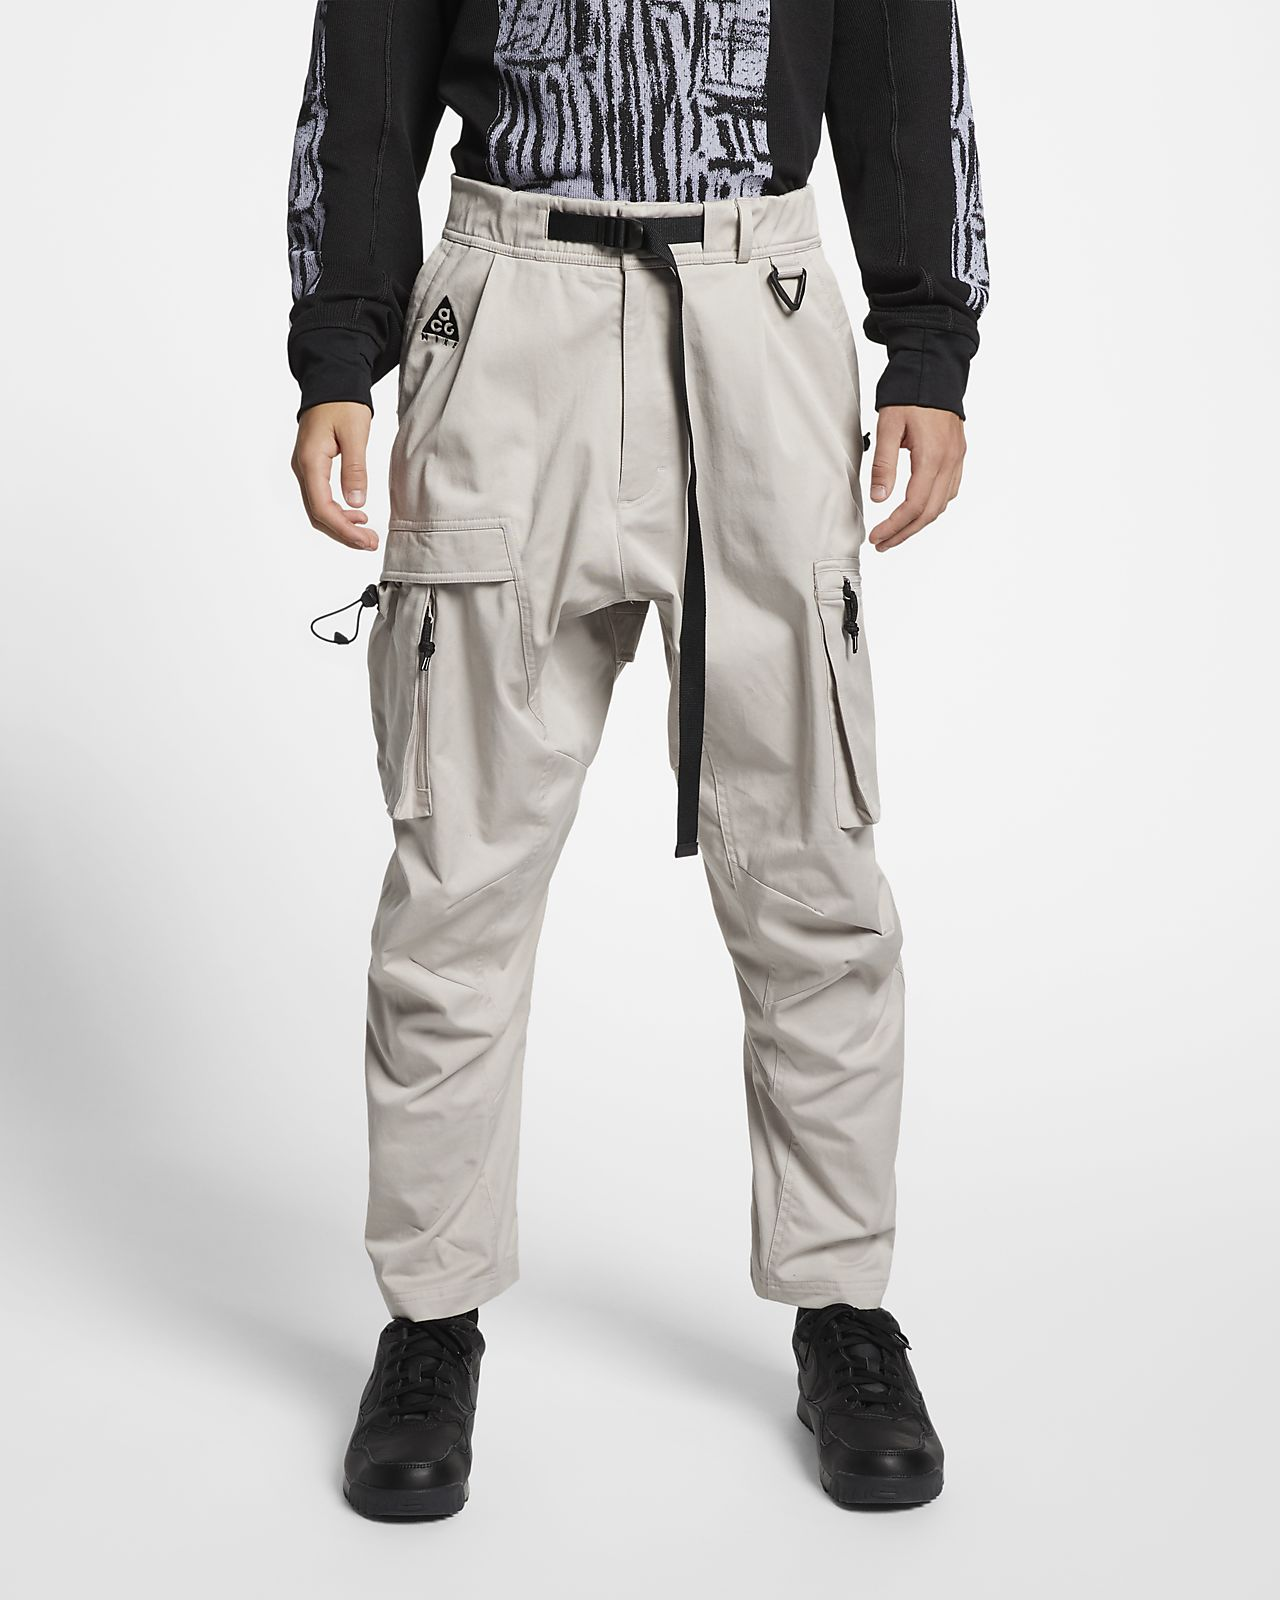 Nike ACG Men's Trousers